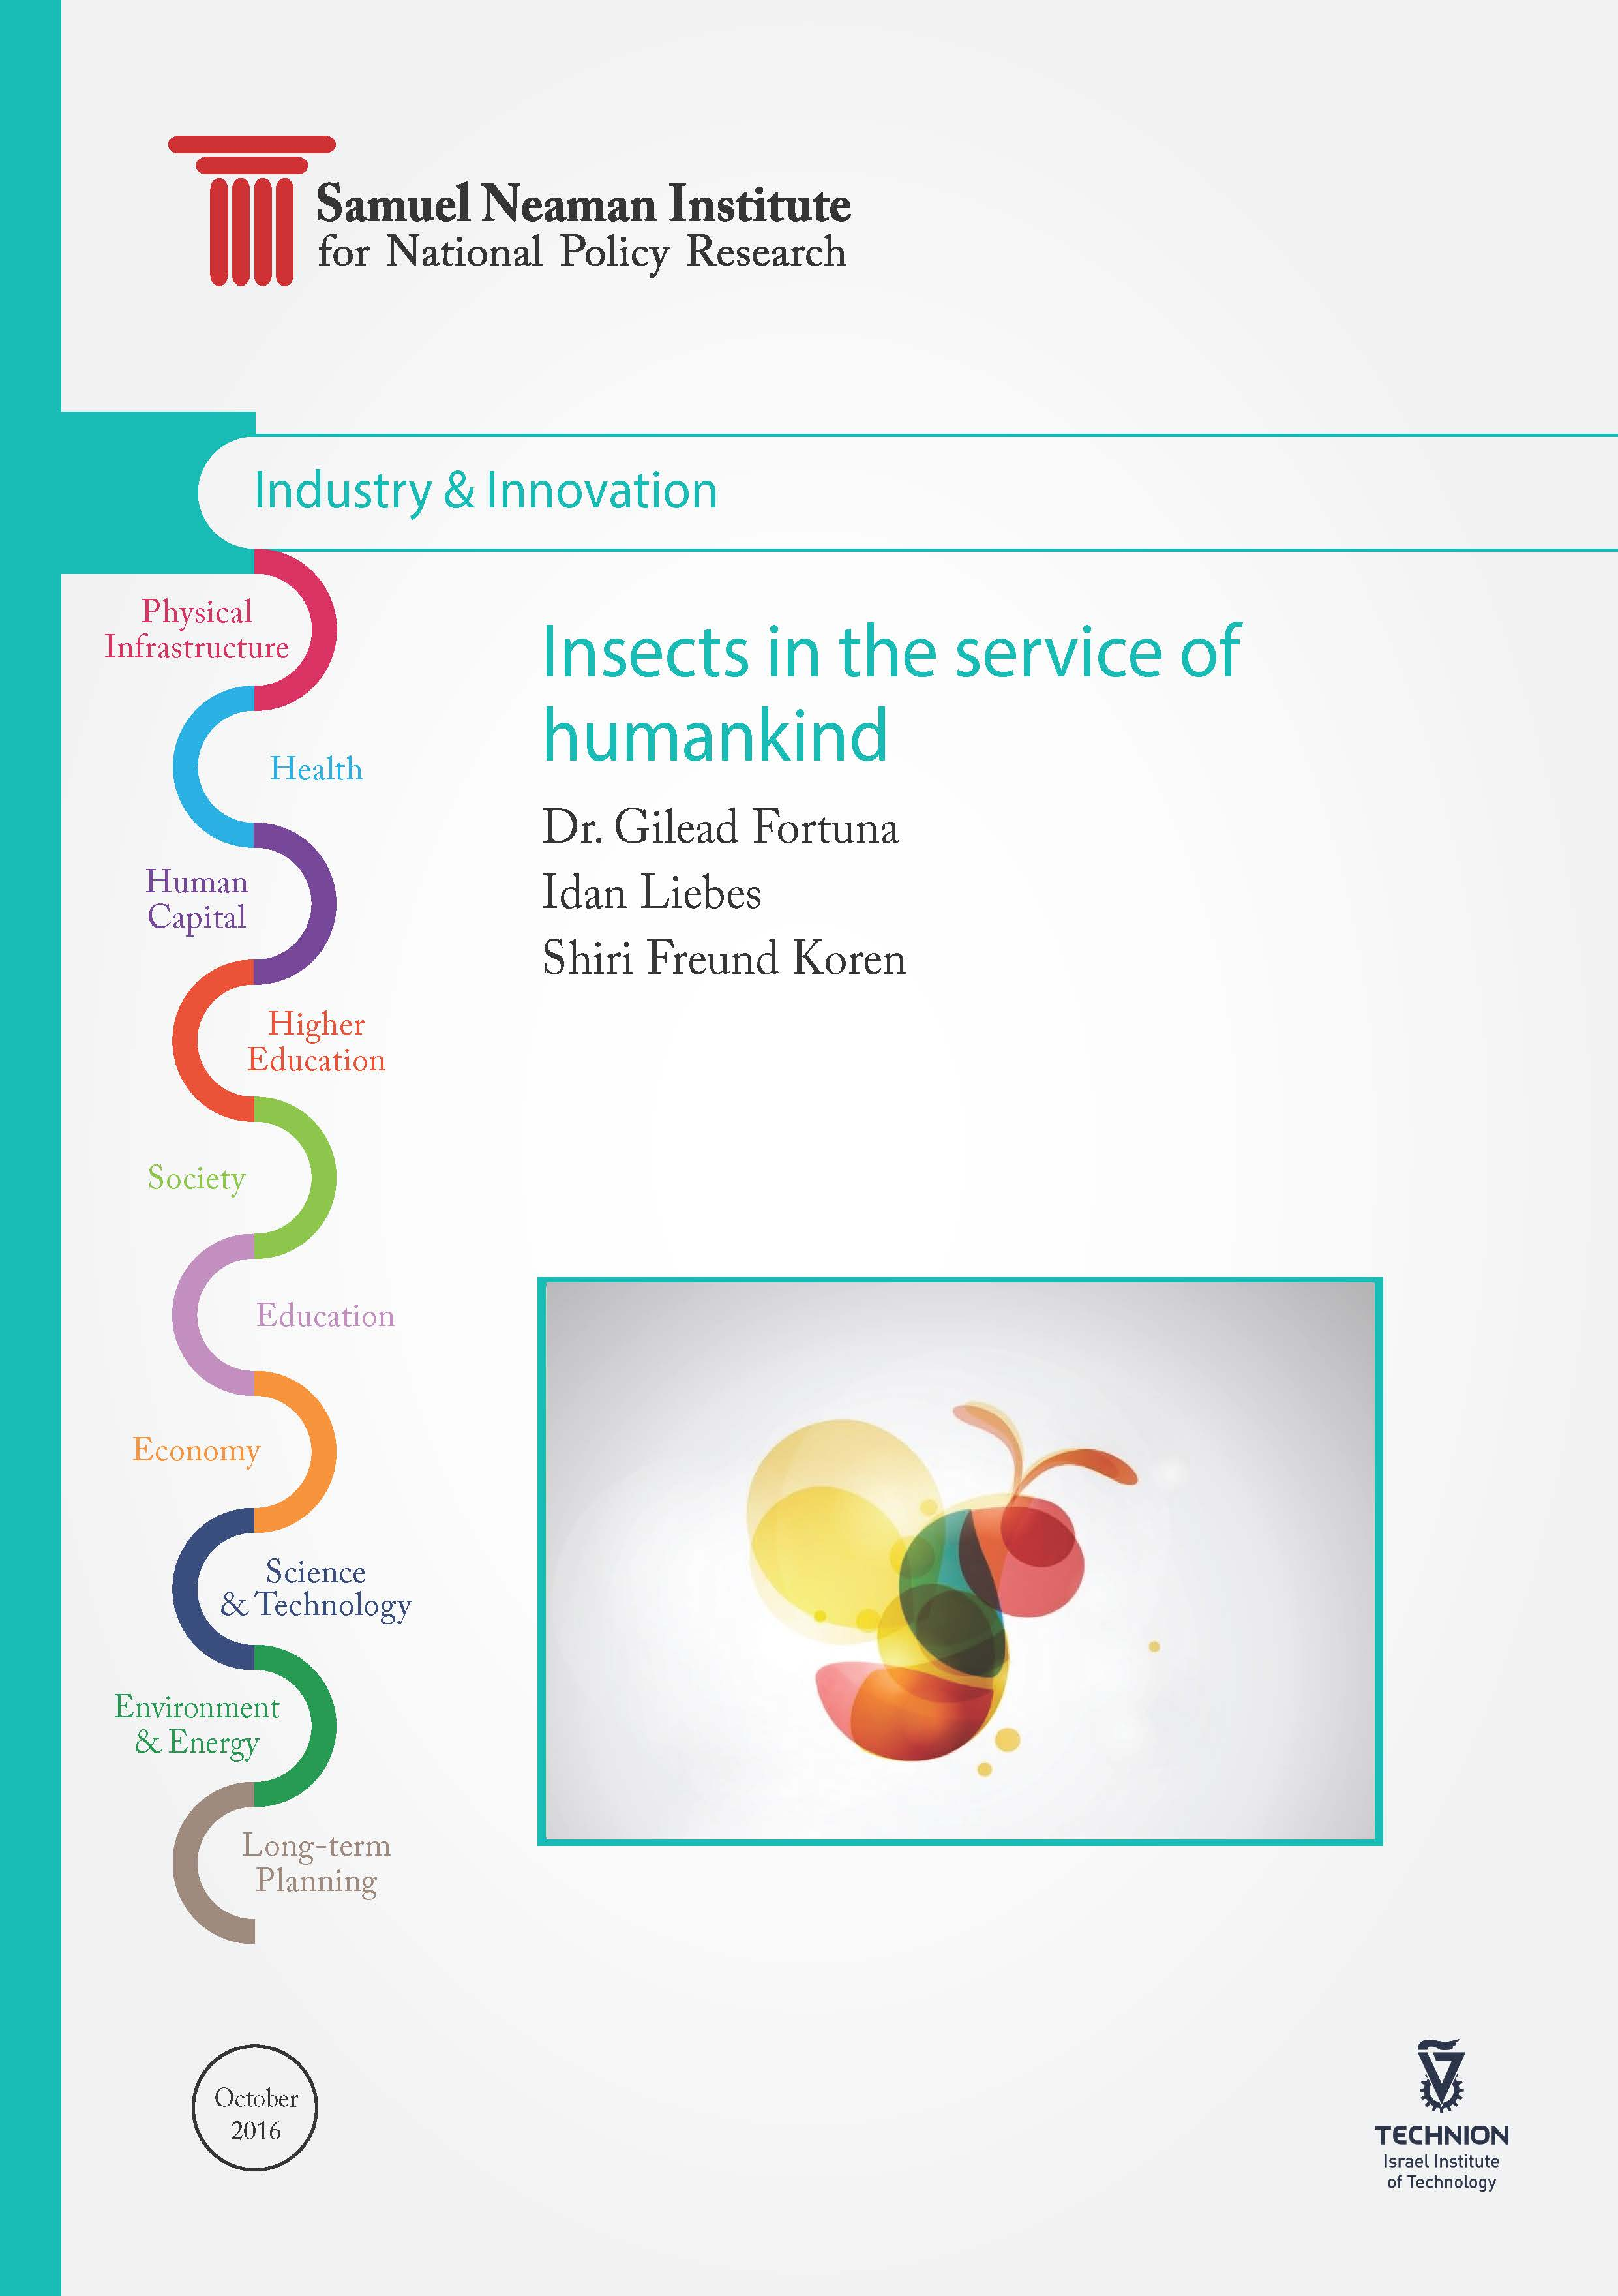 Insects in the Service of Man: Review and Recommendations for the City of Afula as a Hub to Promote the Field - English version